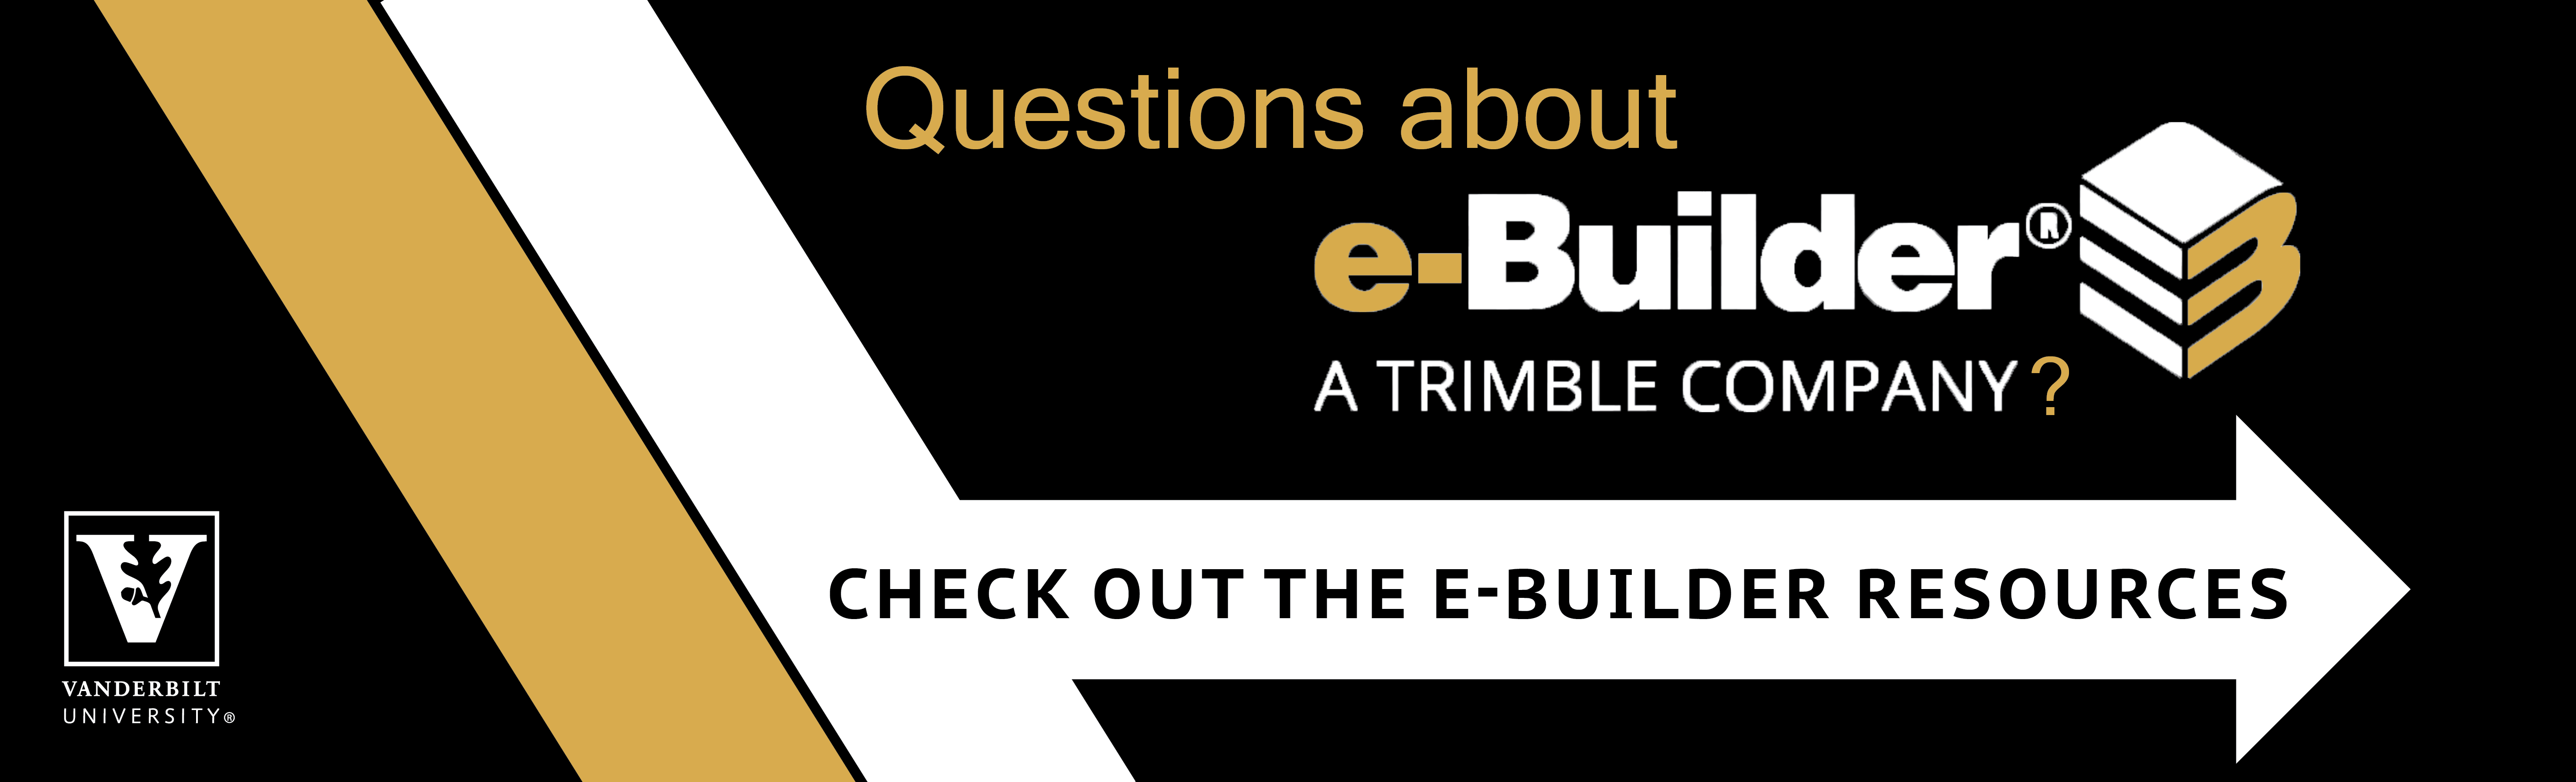 Link to check out the e-builder resources